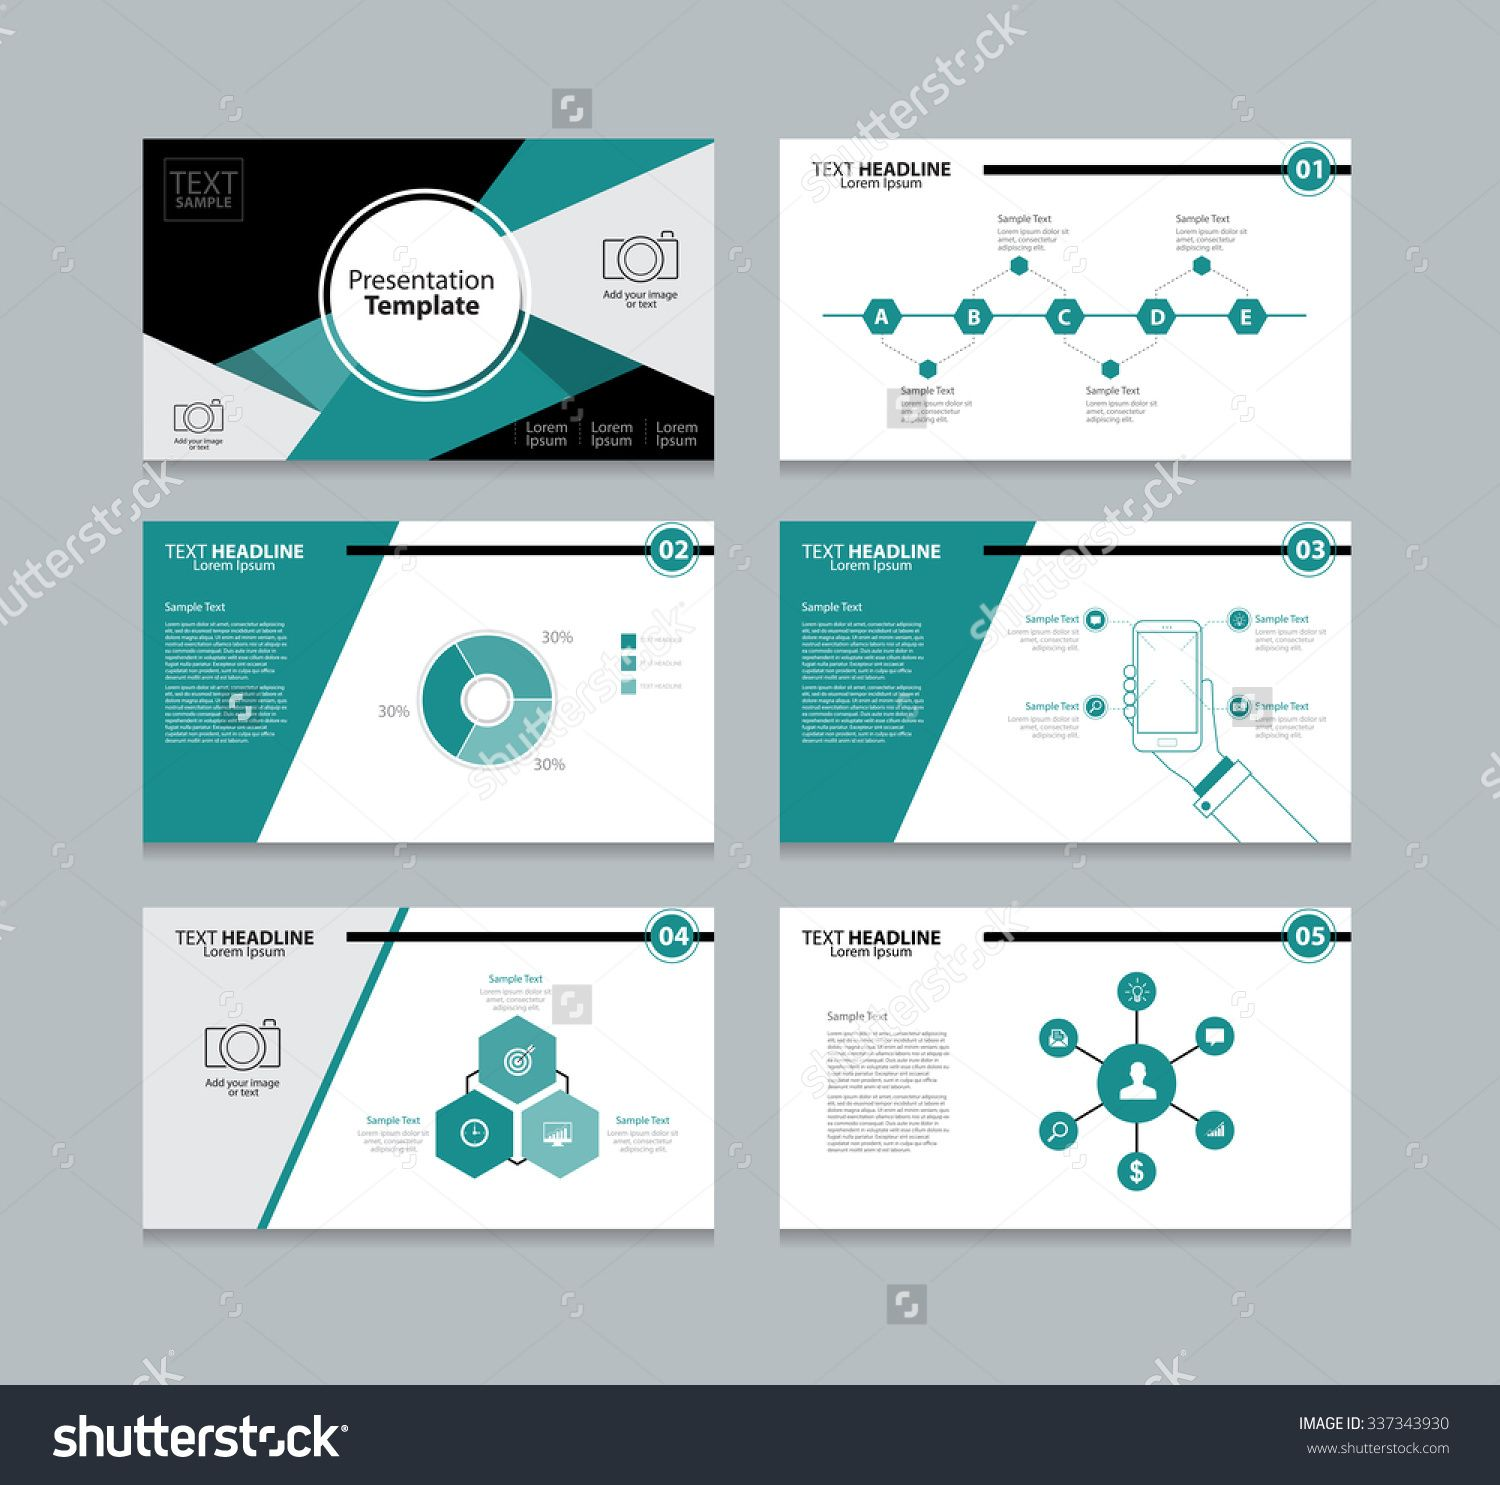 Business PowerPoint Slides, Presentation Backgrounds & PPT Templates